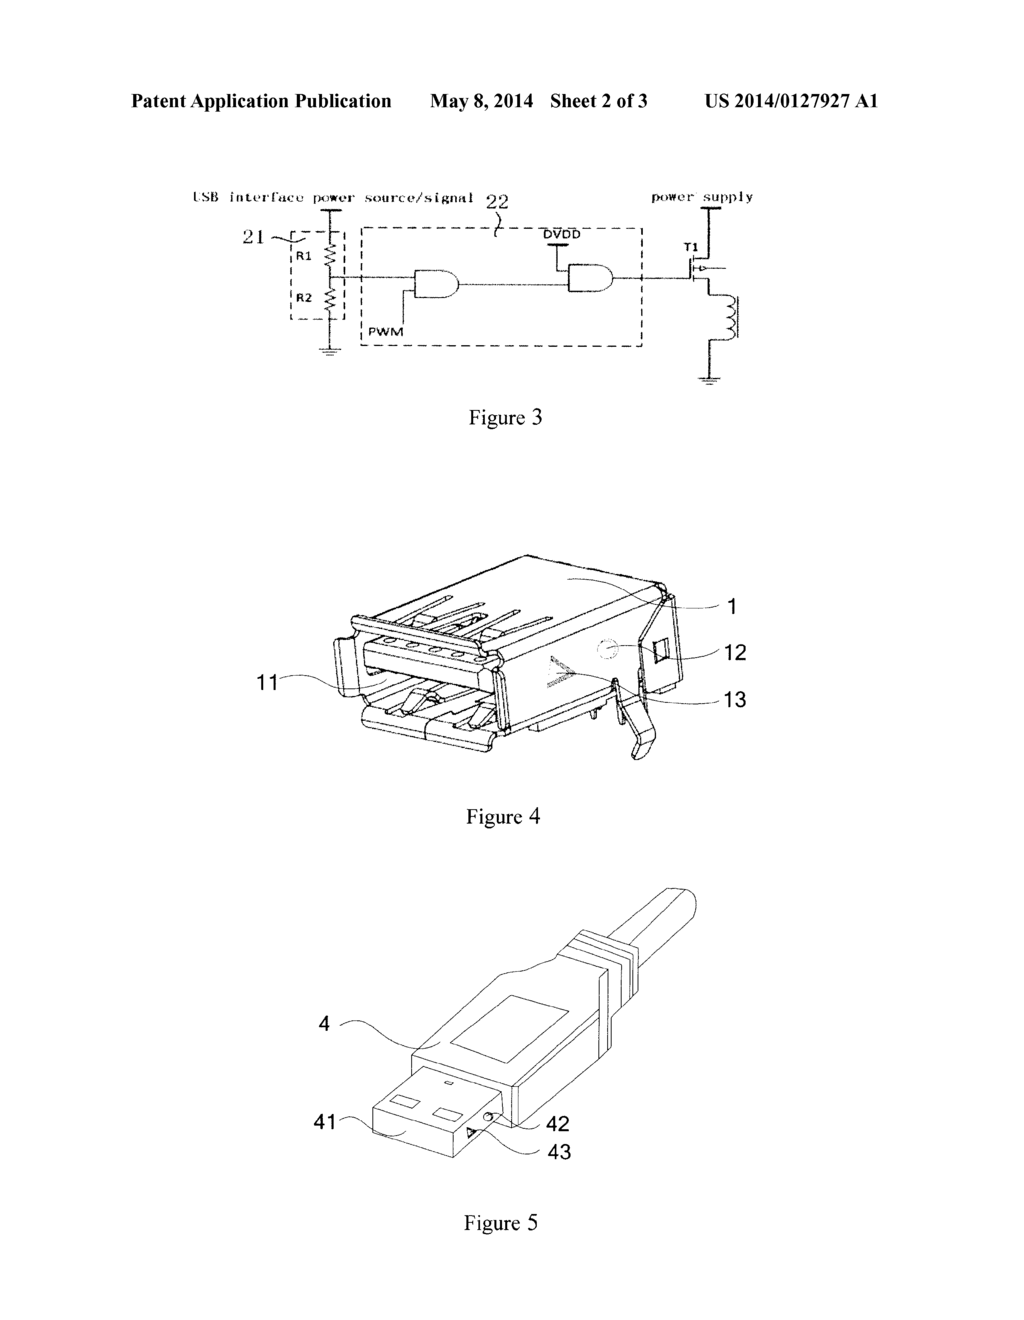 hight resolution of usb male end usb female end and usb port connection device diagram schematic and image 03